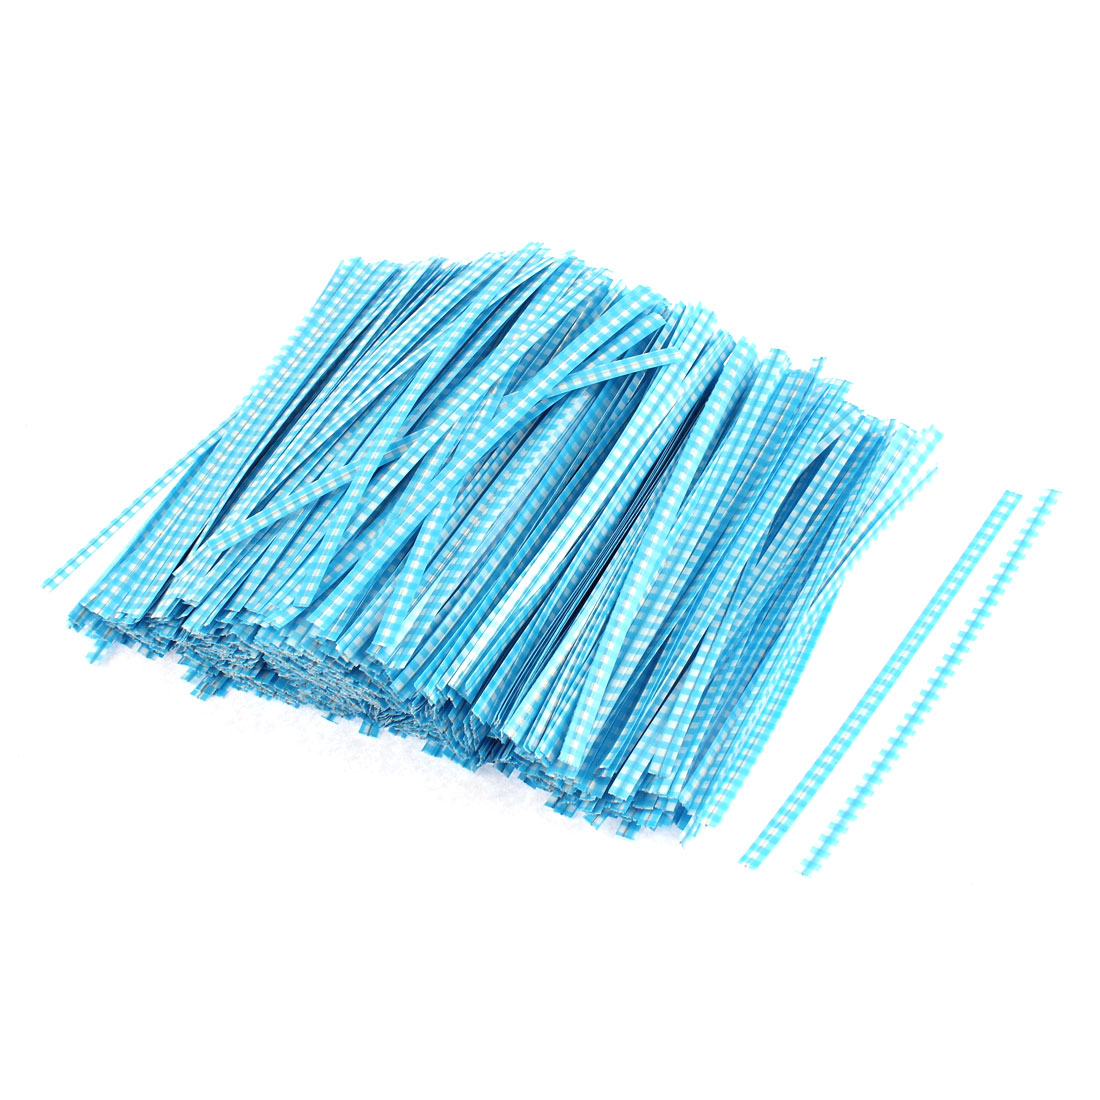 Grid Pattern Bakery Candy Bags Packaging Twist Ties Sky Blue 1200PCS